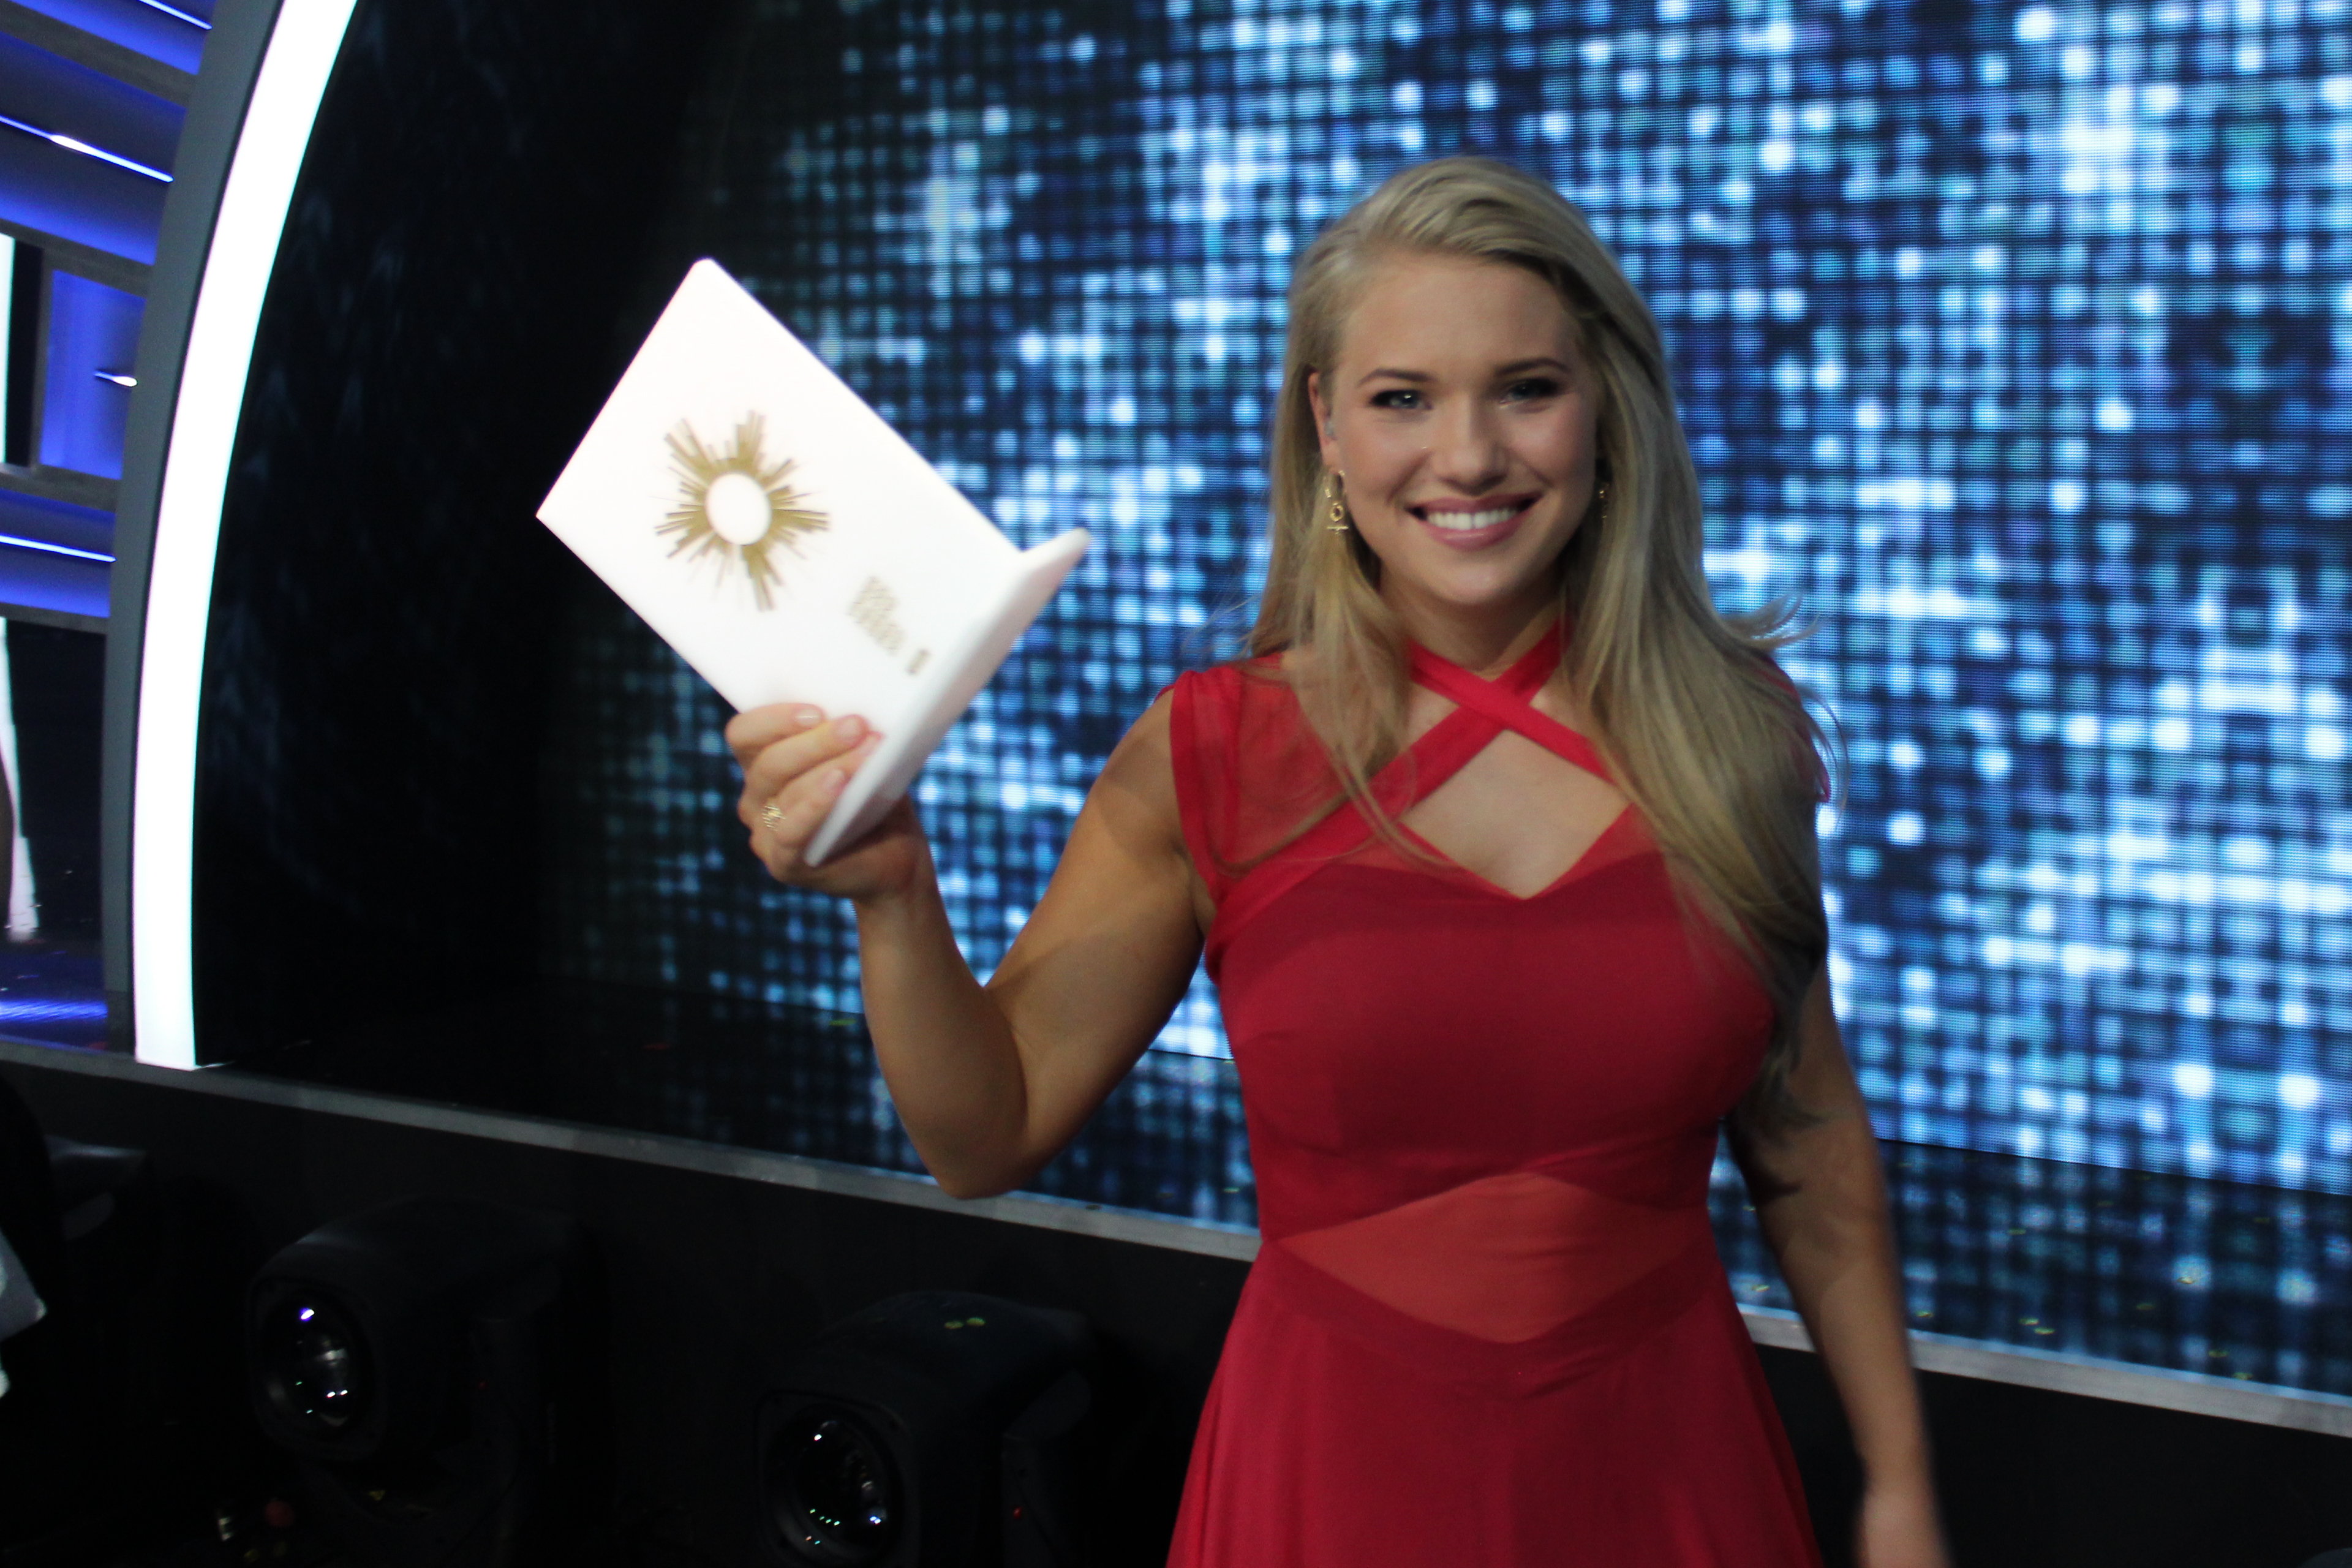 anja nissen with her winning trophy eurovisionary eurovision news worth reading. Black Bedroom Furniture Sets. Home Design Ideas